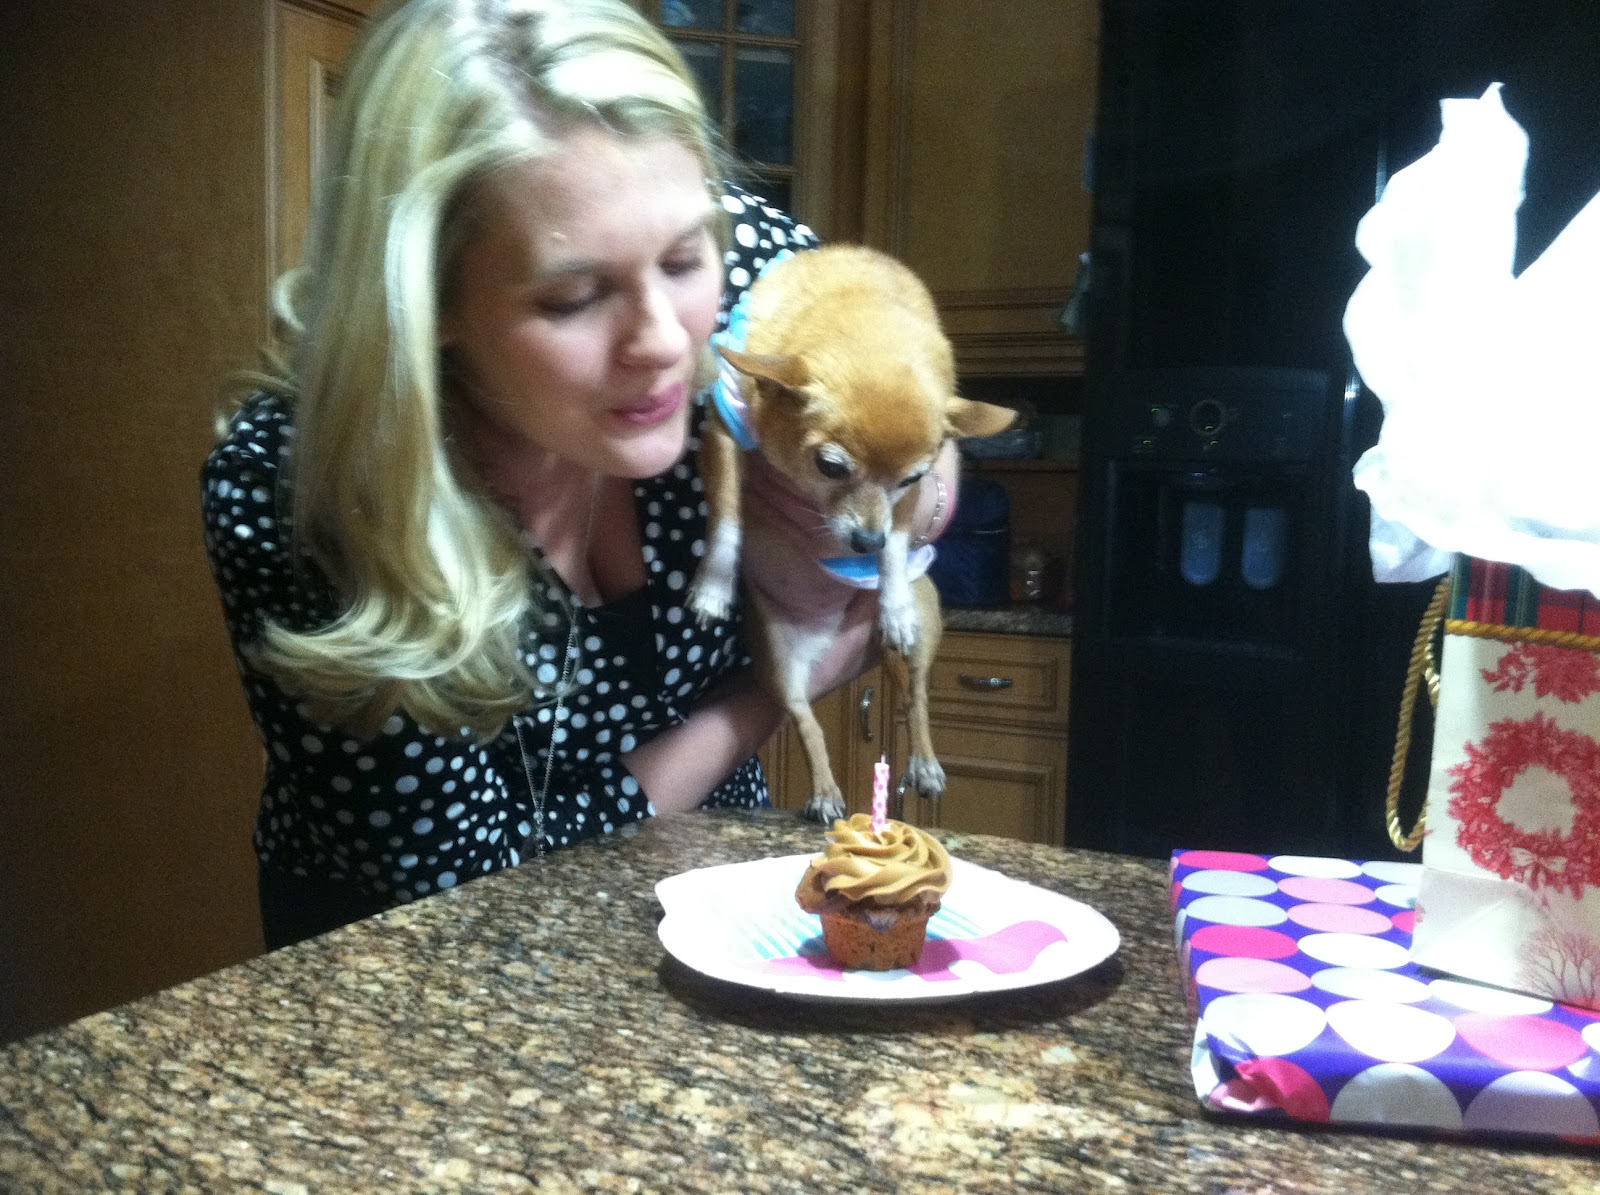 Kyla S Cupcakes Pupcakes The Cupcakes For Dogs